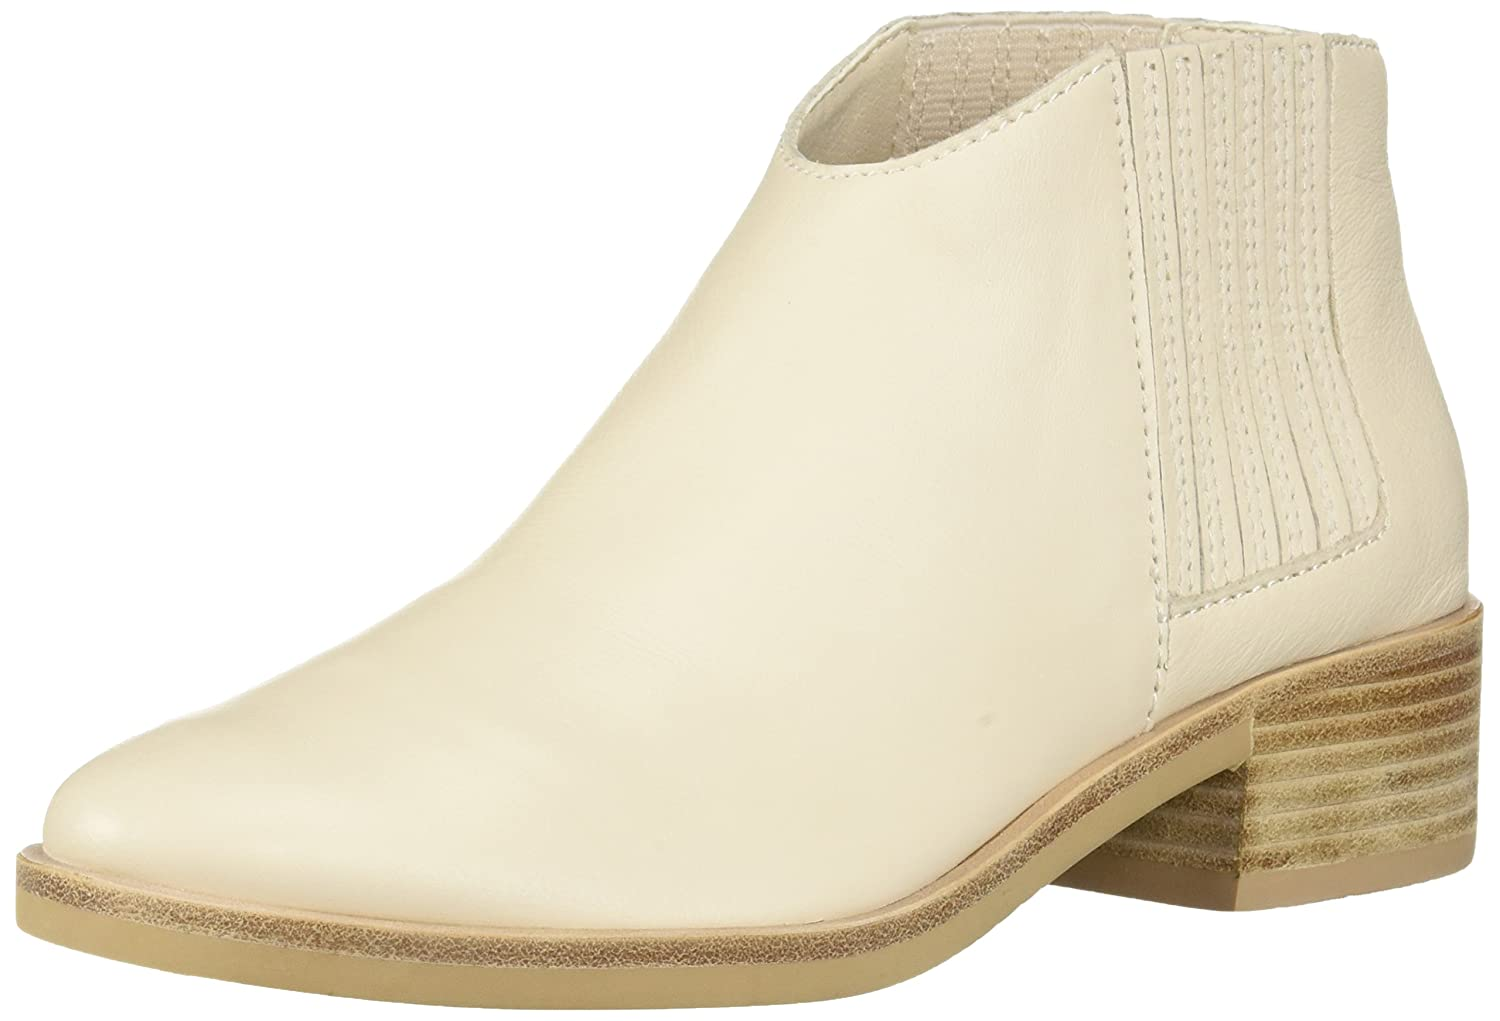 Dolce Vita Women's Towne Ankle Boot B07BRBST5G 9.5 B(M) US|Ivory Leather